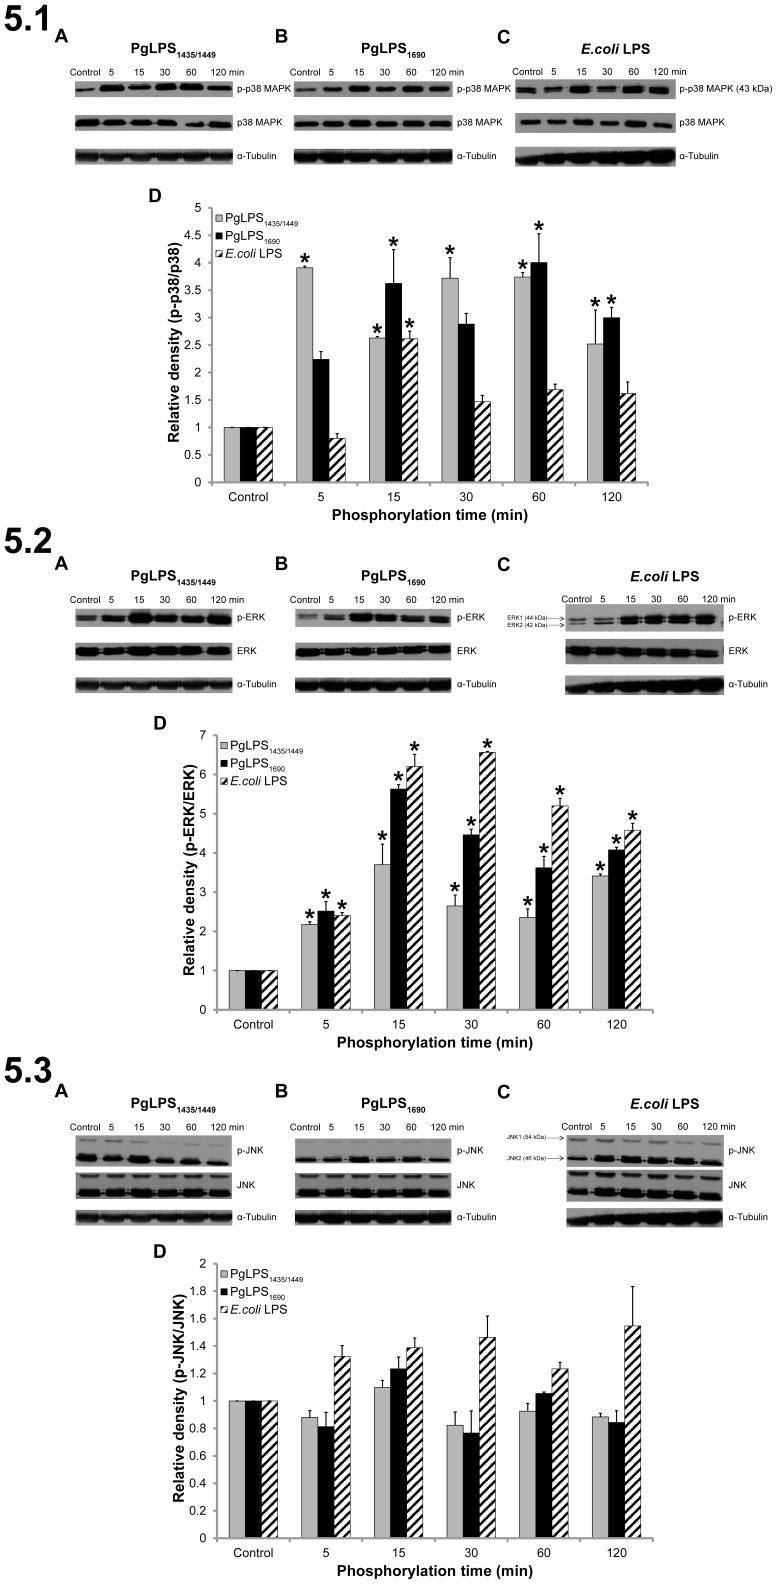 P. gingivalis (Pg) LPS (PgLPS) and E. coli LPS activated the MAPK pathway in HGFs. Kinetics of P38 mitogen activated protein kinase (P38 MAPK), extracellular signal-regulated kinase1/2(ERK1/2), and Stress-activated protein kinase/c-Jun NH2-terminal kinase (SAPK/JNK) phosphorylation in HGFs are shown in 5.1 , 5.2 and 5.3 , respectively. Cells were treated with PgLPS 1435/1449 (A), PgLPS 1690 (B) and E. coli LPS (C) at 1 µg/mL for the indicated period of time. Cell extracts were prepared and the levels of P38 MAPK, phospho-p38MAPK, ERK, phospho-ERK, JNK and phospho-JNK were determined by western blotting. Quantification of band intensities was performed by densitometry analysis using Image J software. The fold increase values of phospho-protiens of P38 MAPK (5.1D), ERK1/2 (5.2D) and SAPK/JNK (5.3D) as compared with the total protein are shown in the graphs (arbitrary units over control after normalization to the total protein). Equal loading was confirmed by stripping the immunoblot and re-probing it for α-Tubulin. The data shown here are from a representative experiment repeated three times with similar results . *Significant difference with a p -value